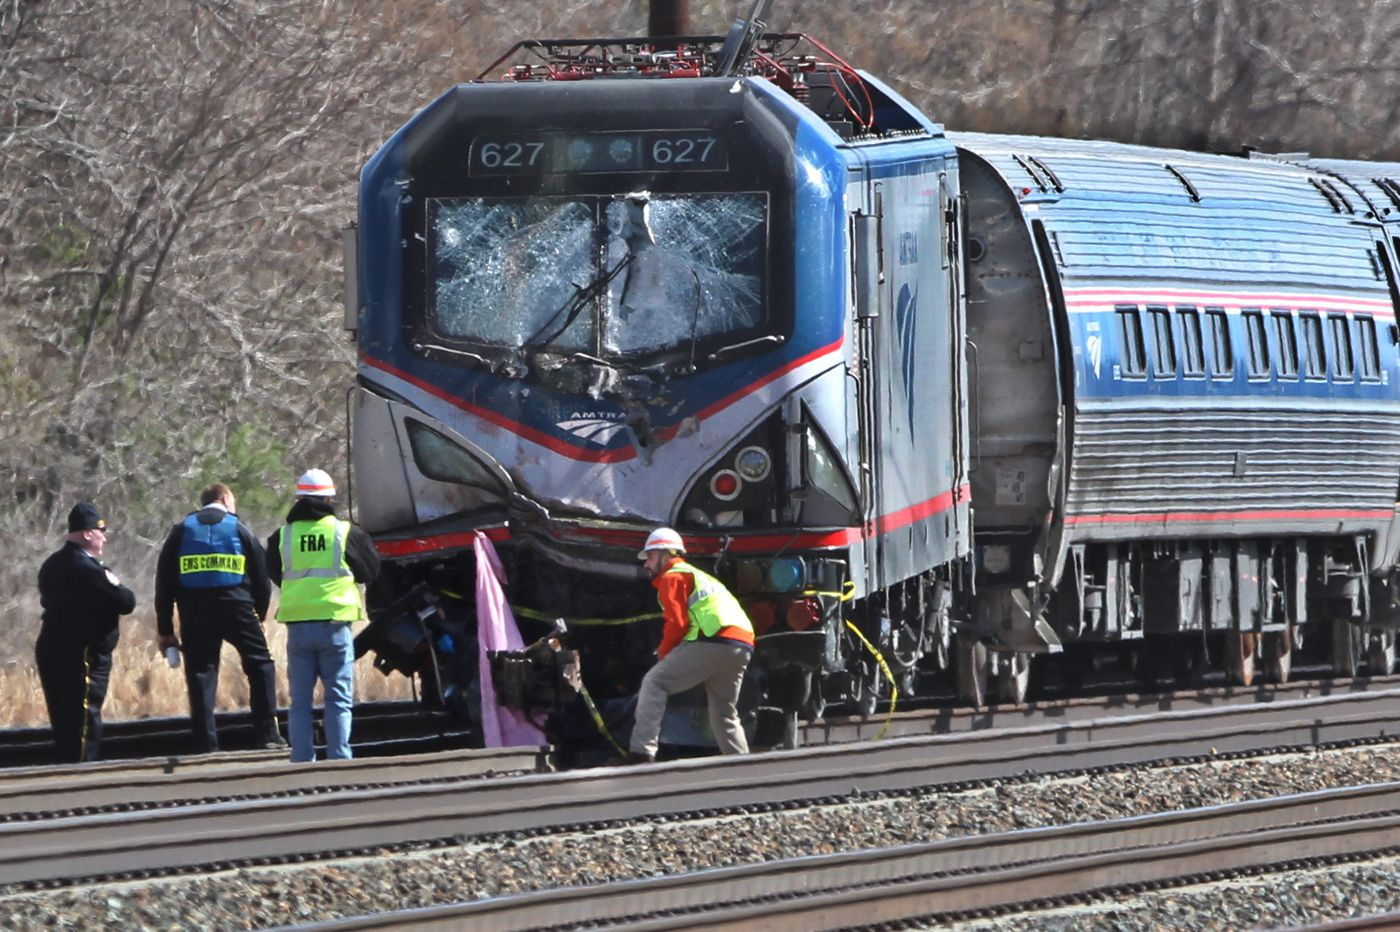 Chester's Amtrak crash leads to new safety protections for rail workers nationwide